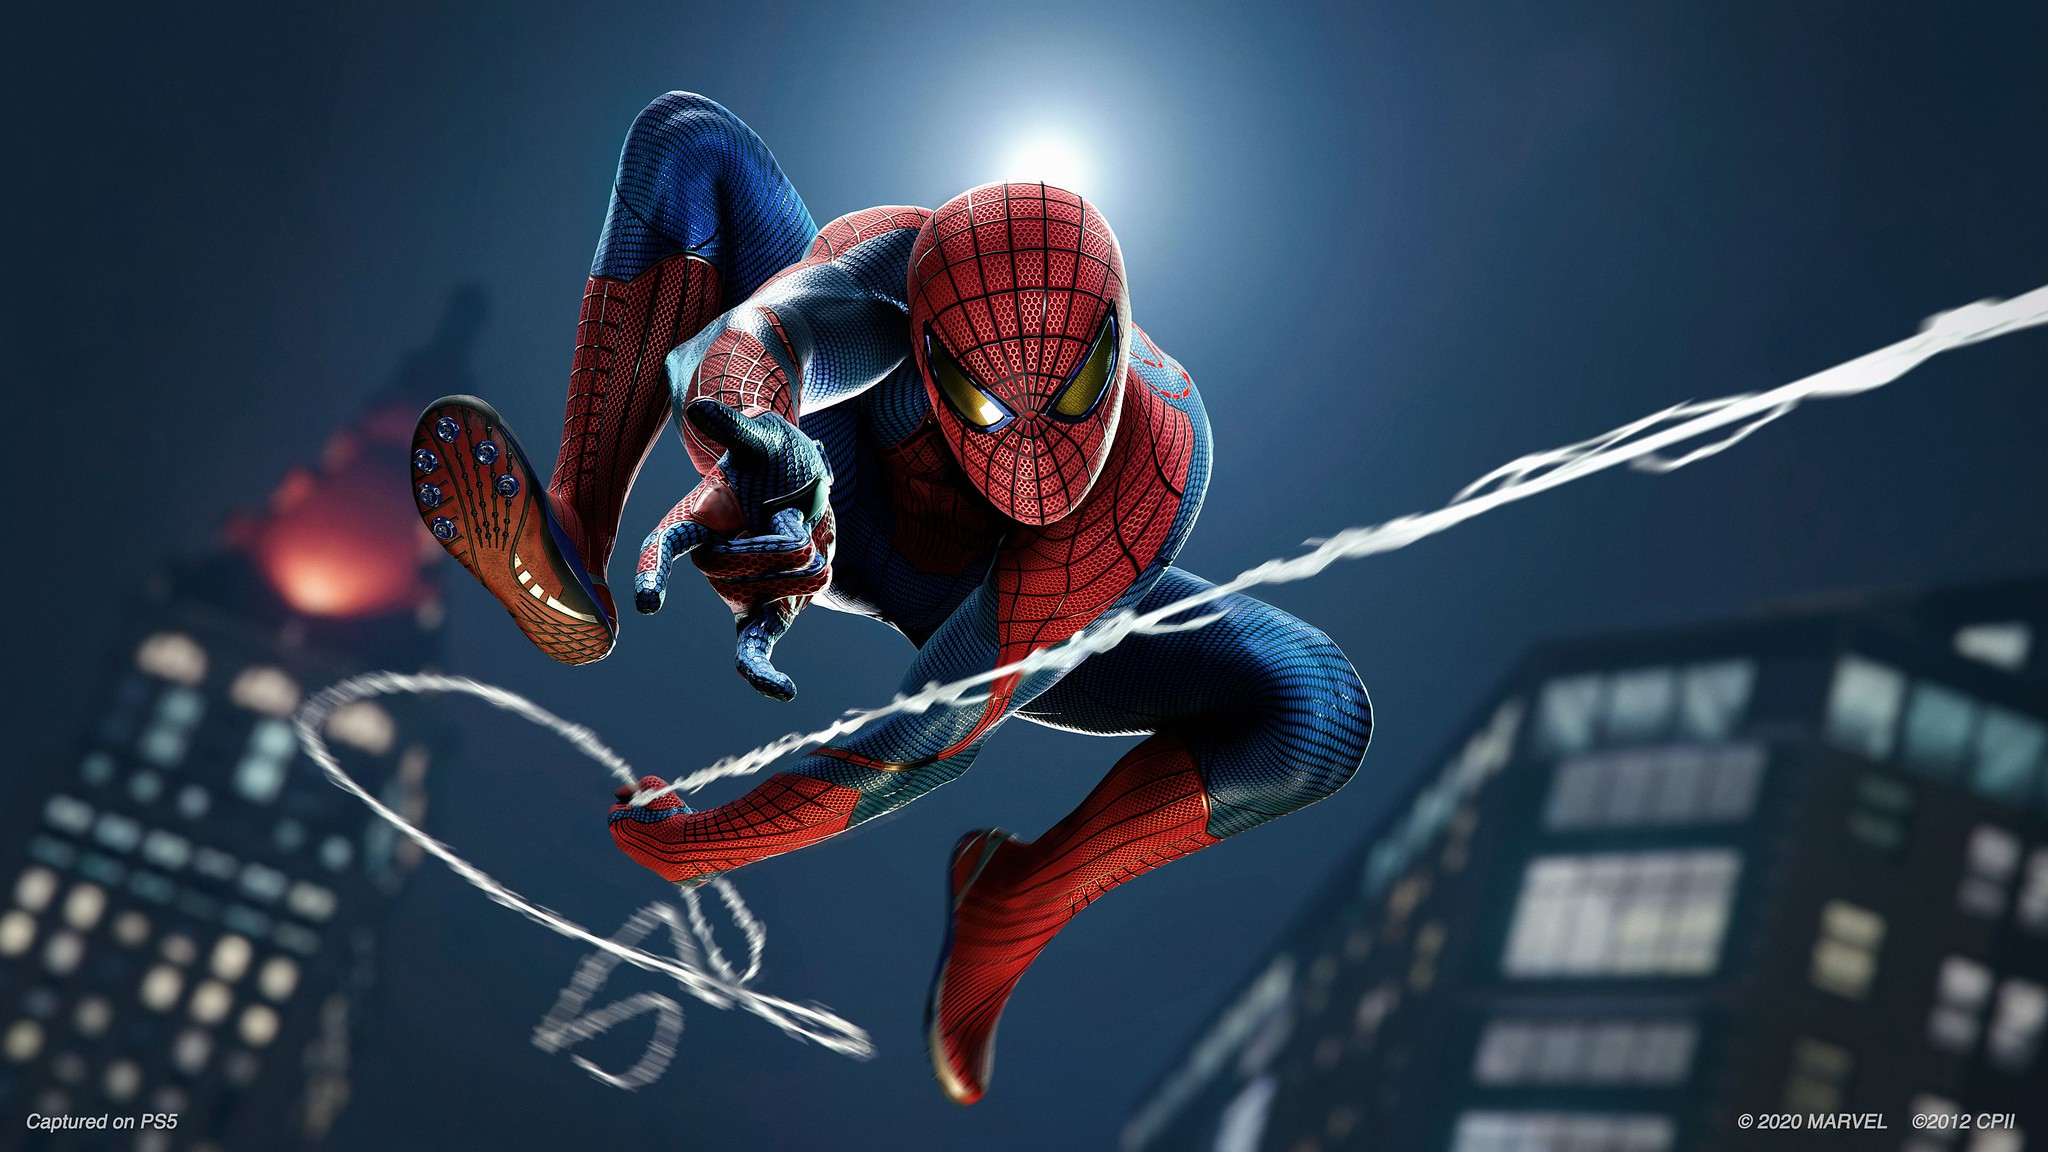 Marvel's Spider-Man Remastered for PS5 will change Peter's face